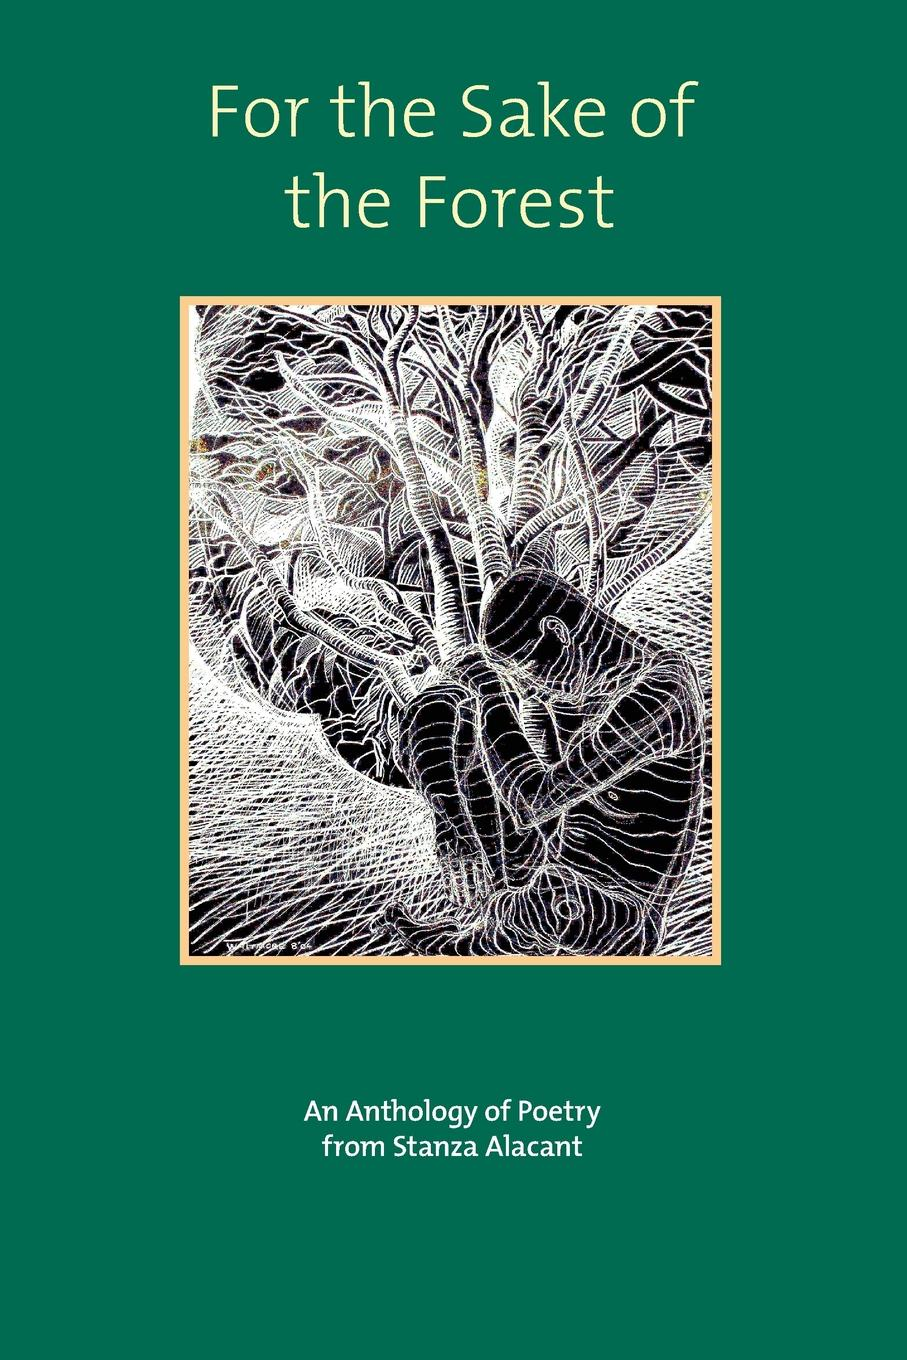 For the Sake of the Forest. An anthology from the Stanza Group.